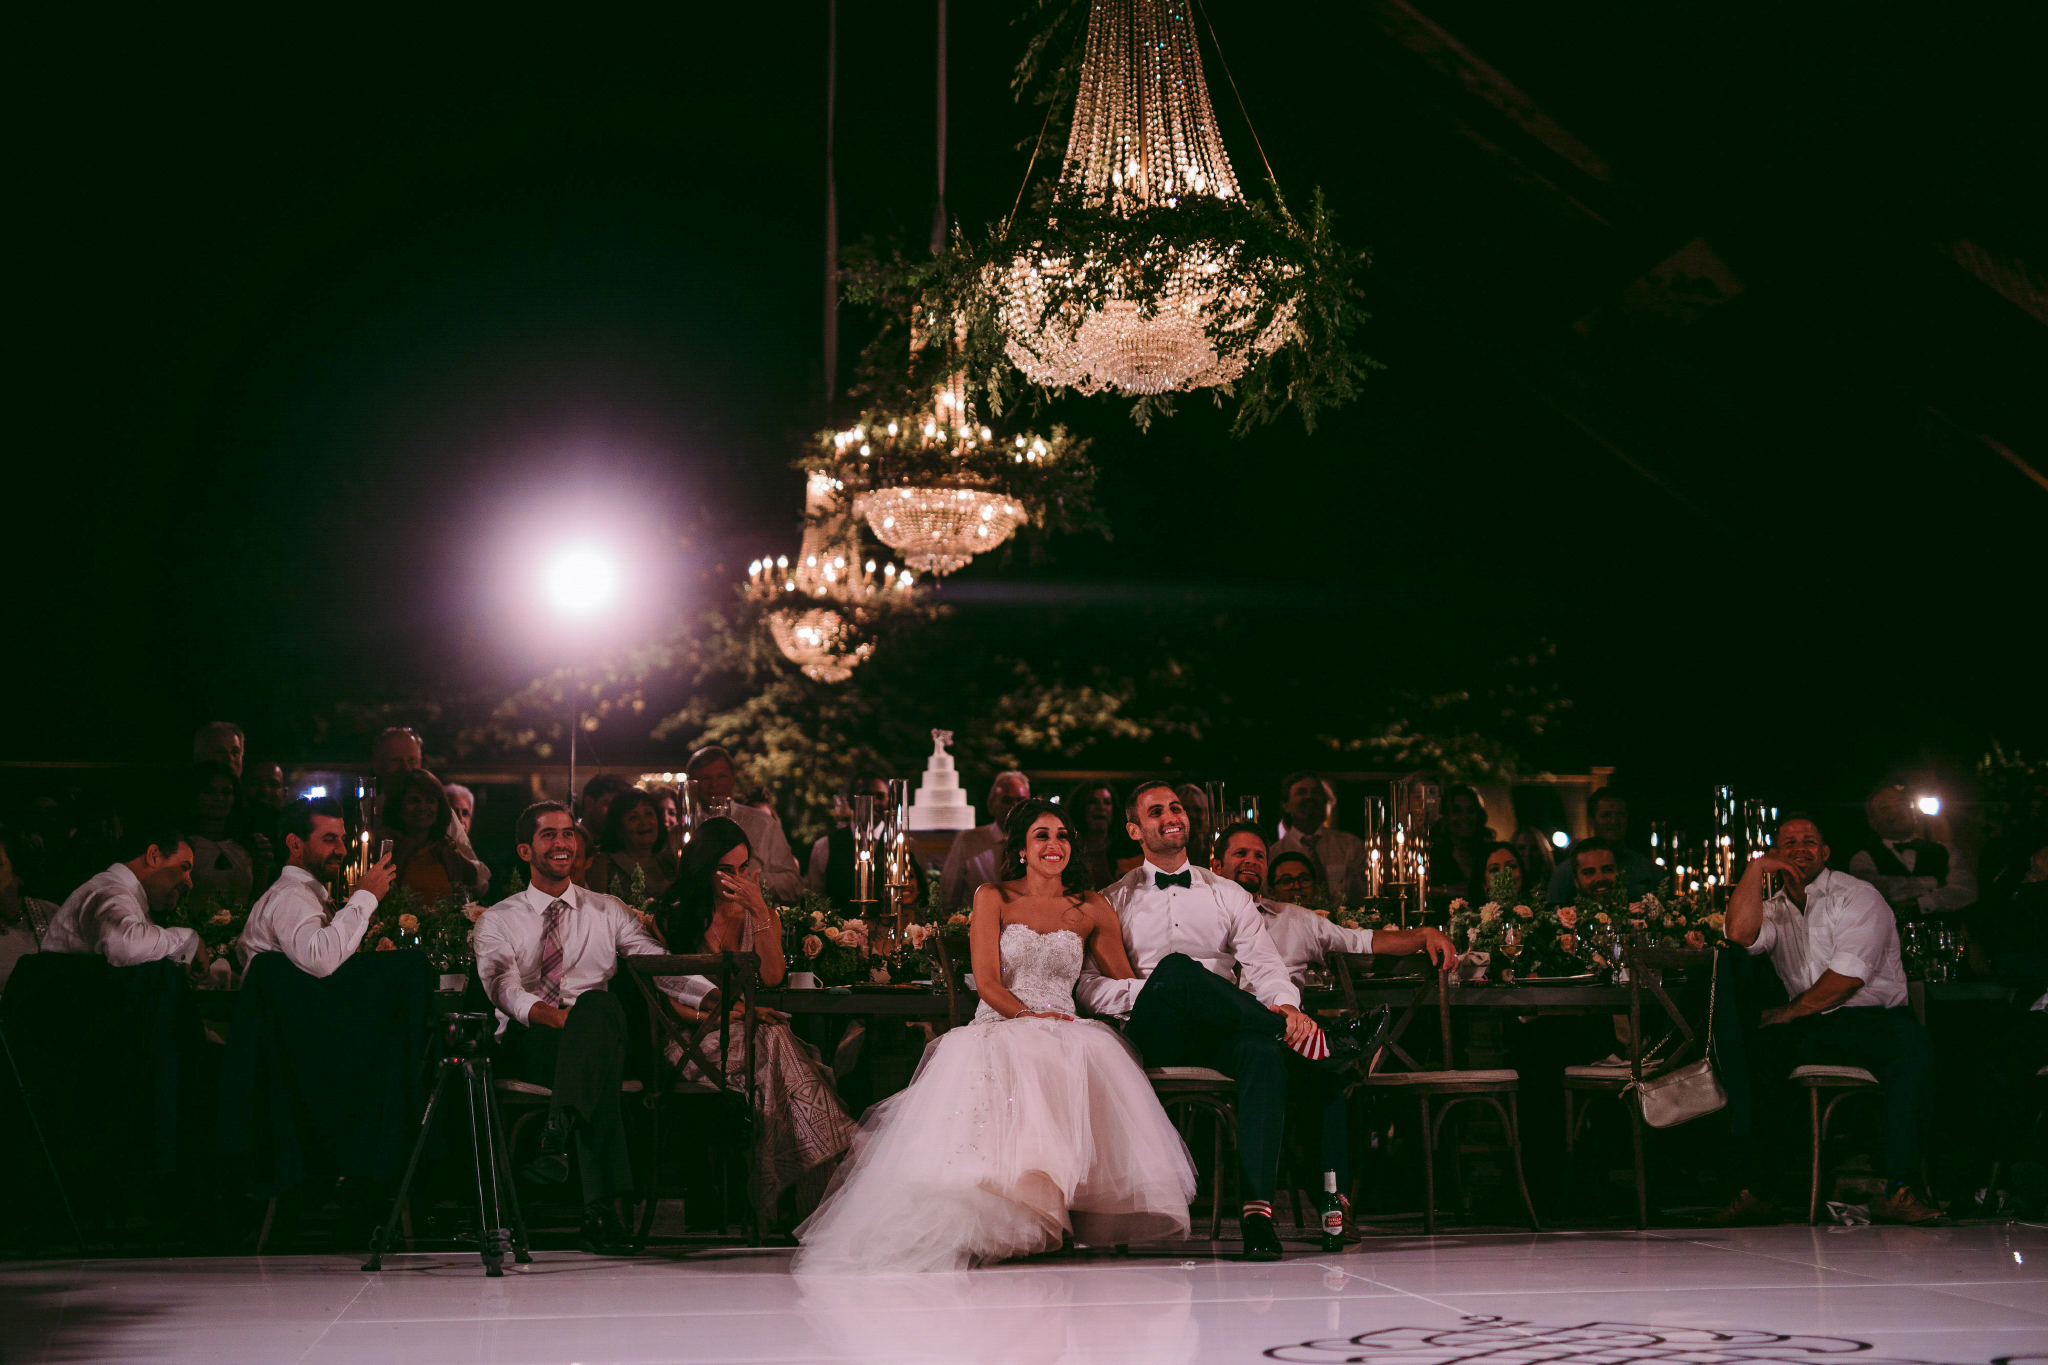 san diego wedding   photographer | shot of dance floor with the married couple seen from behind   under chandelier